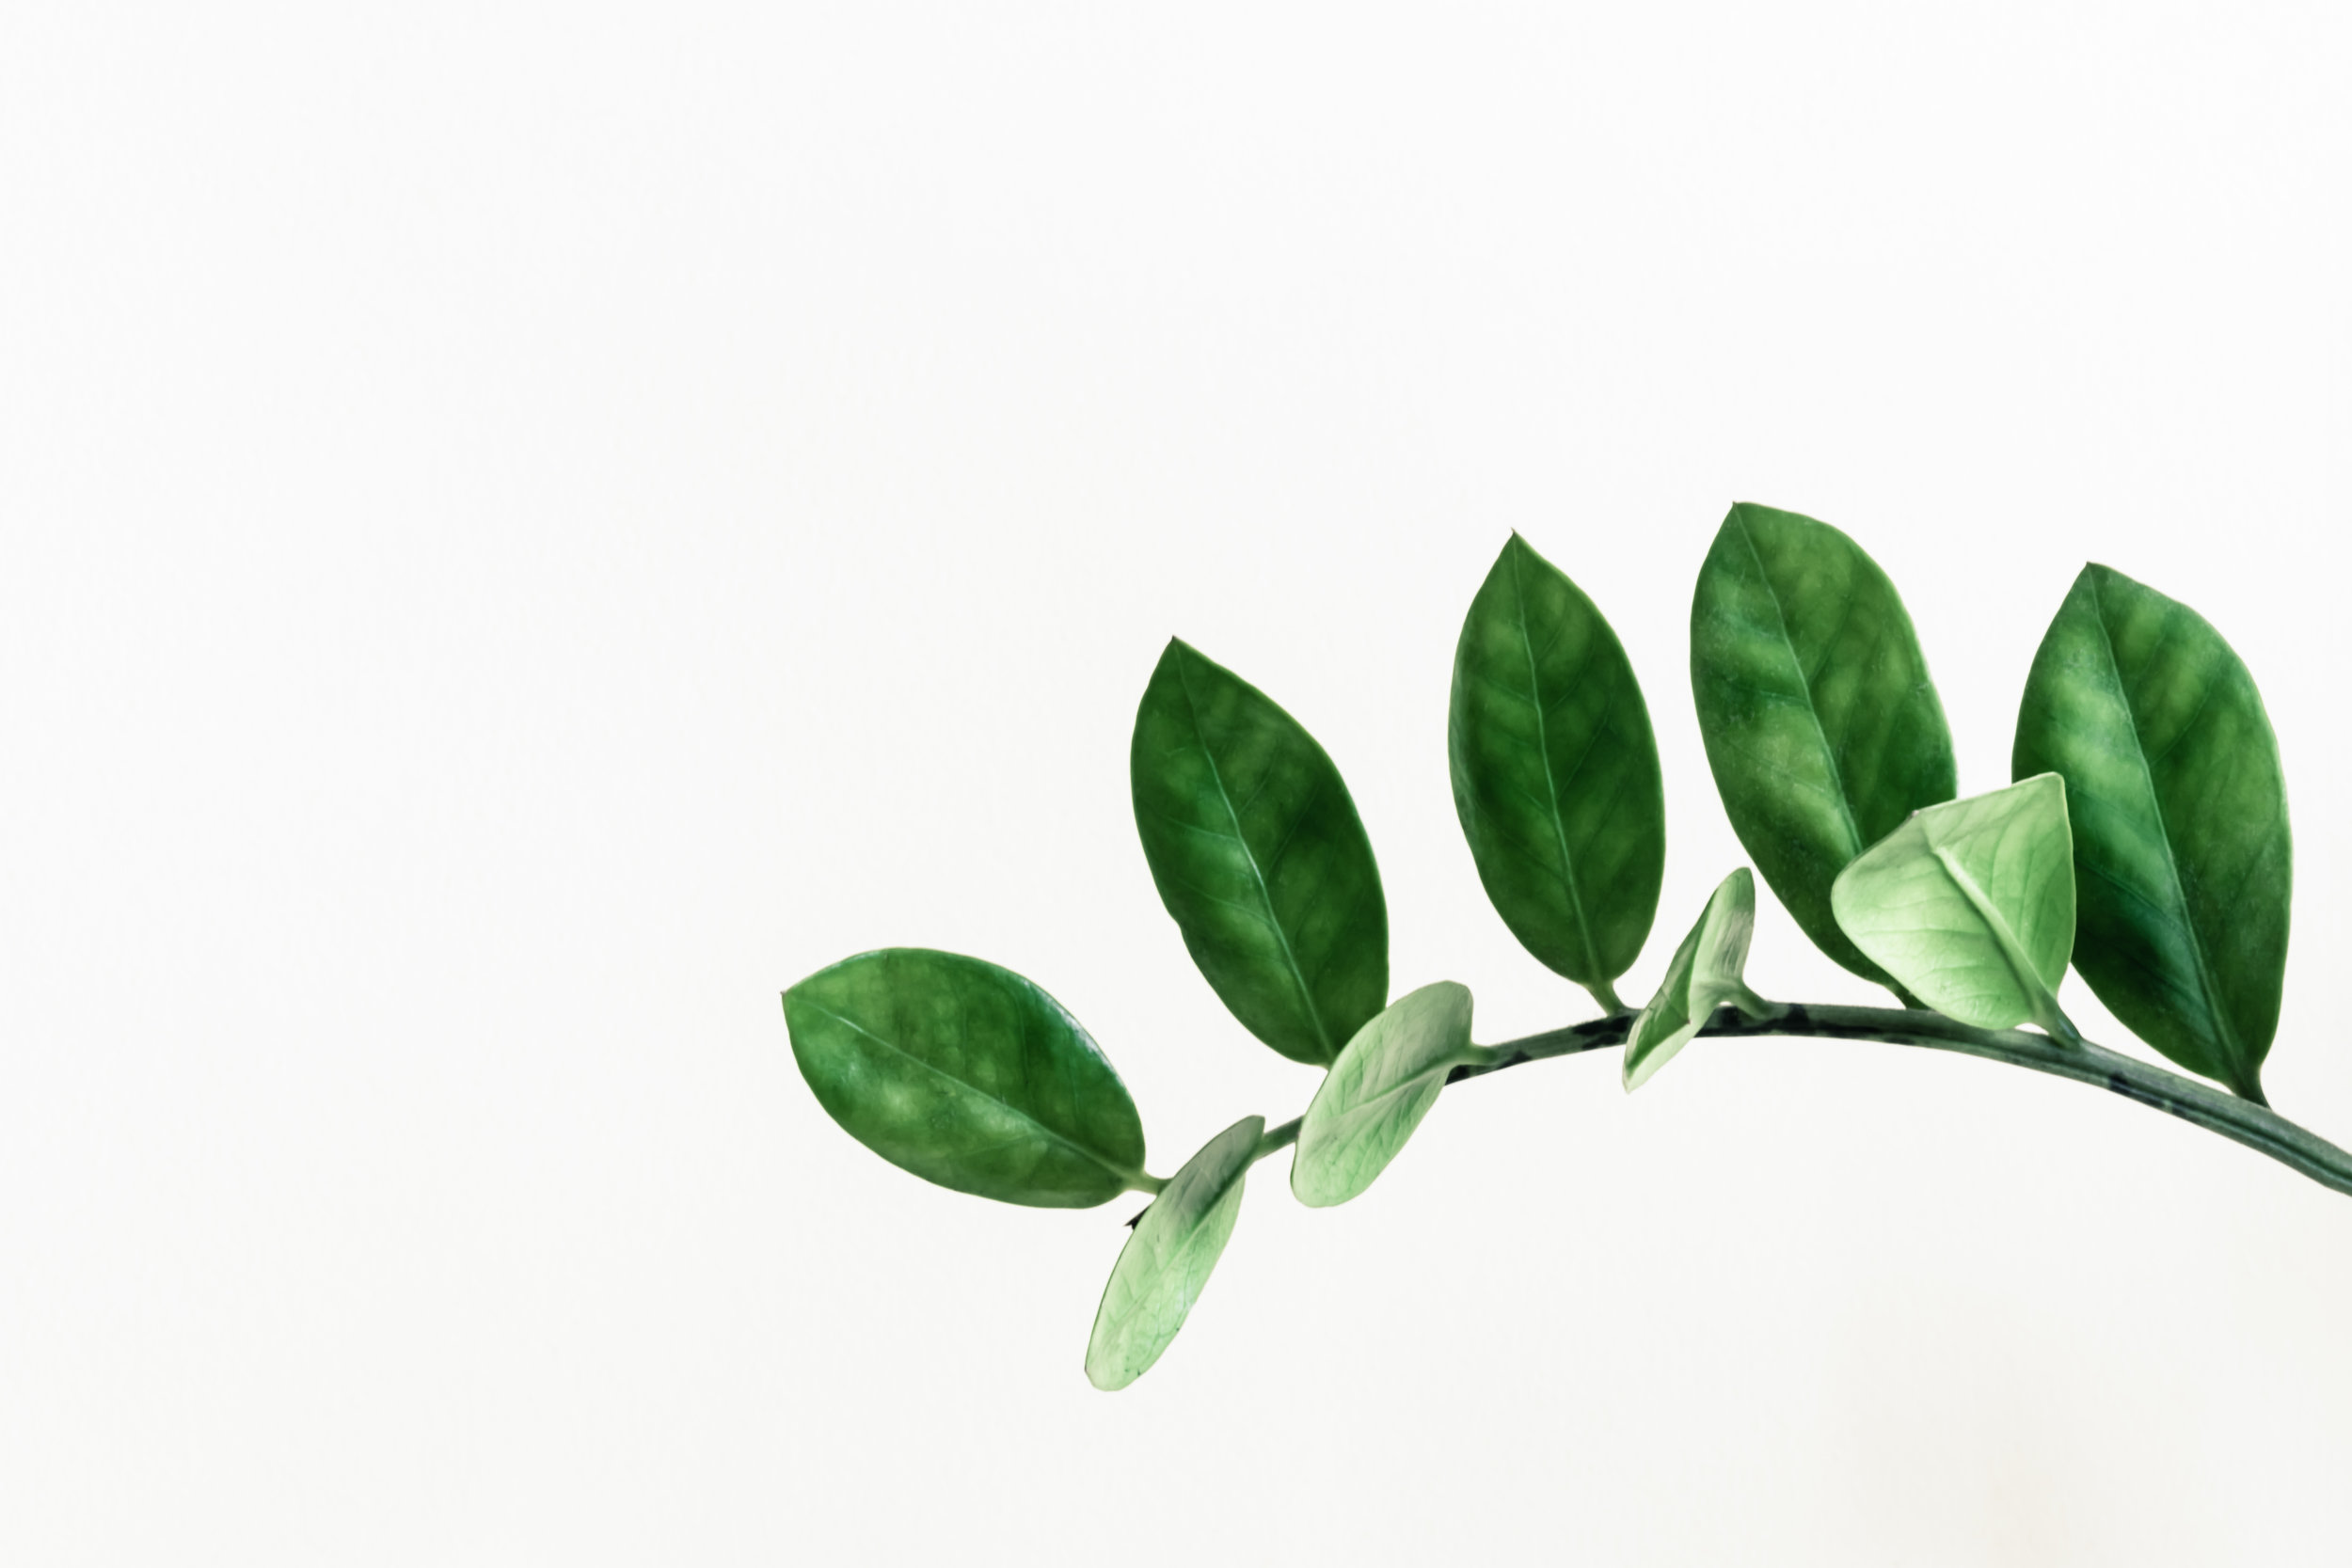 Green - Green is serene and peaceful, and it conveys the idea of growth. This is why green is a popular color for brands related to health, nature, and the environment.